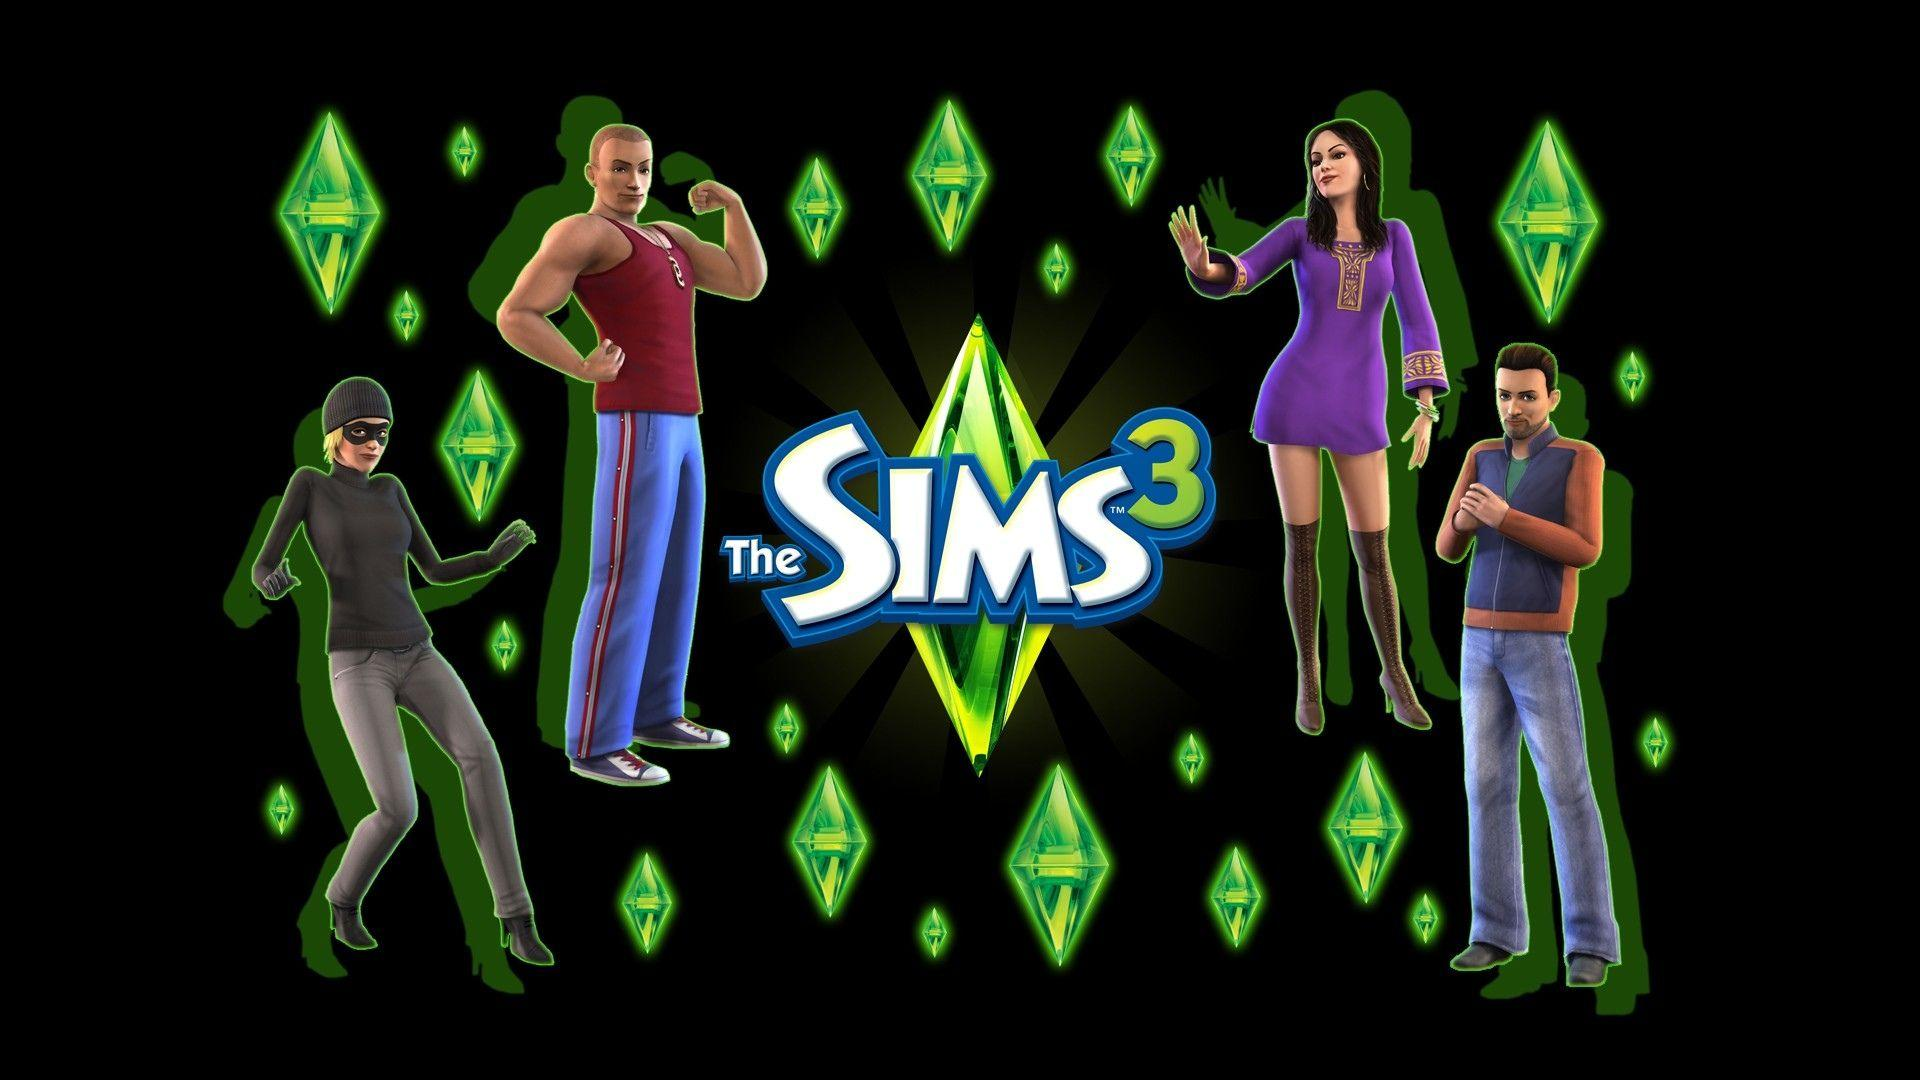 The Sims 3 Computer Wallpapers, Desktop Backgrounds